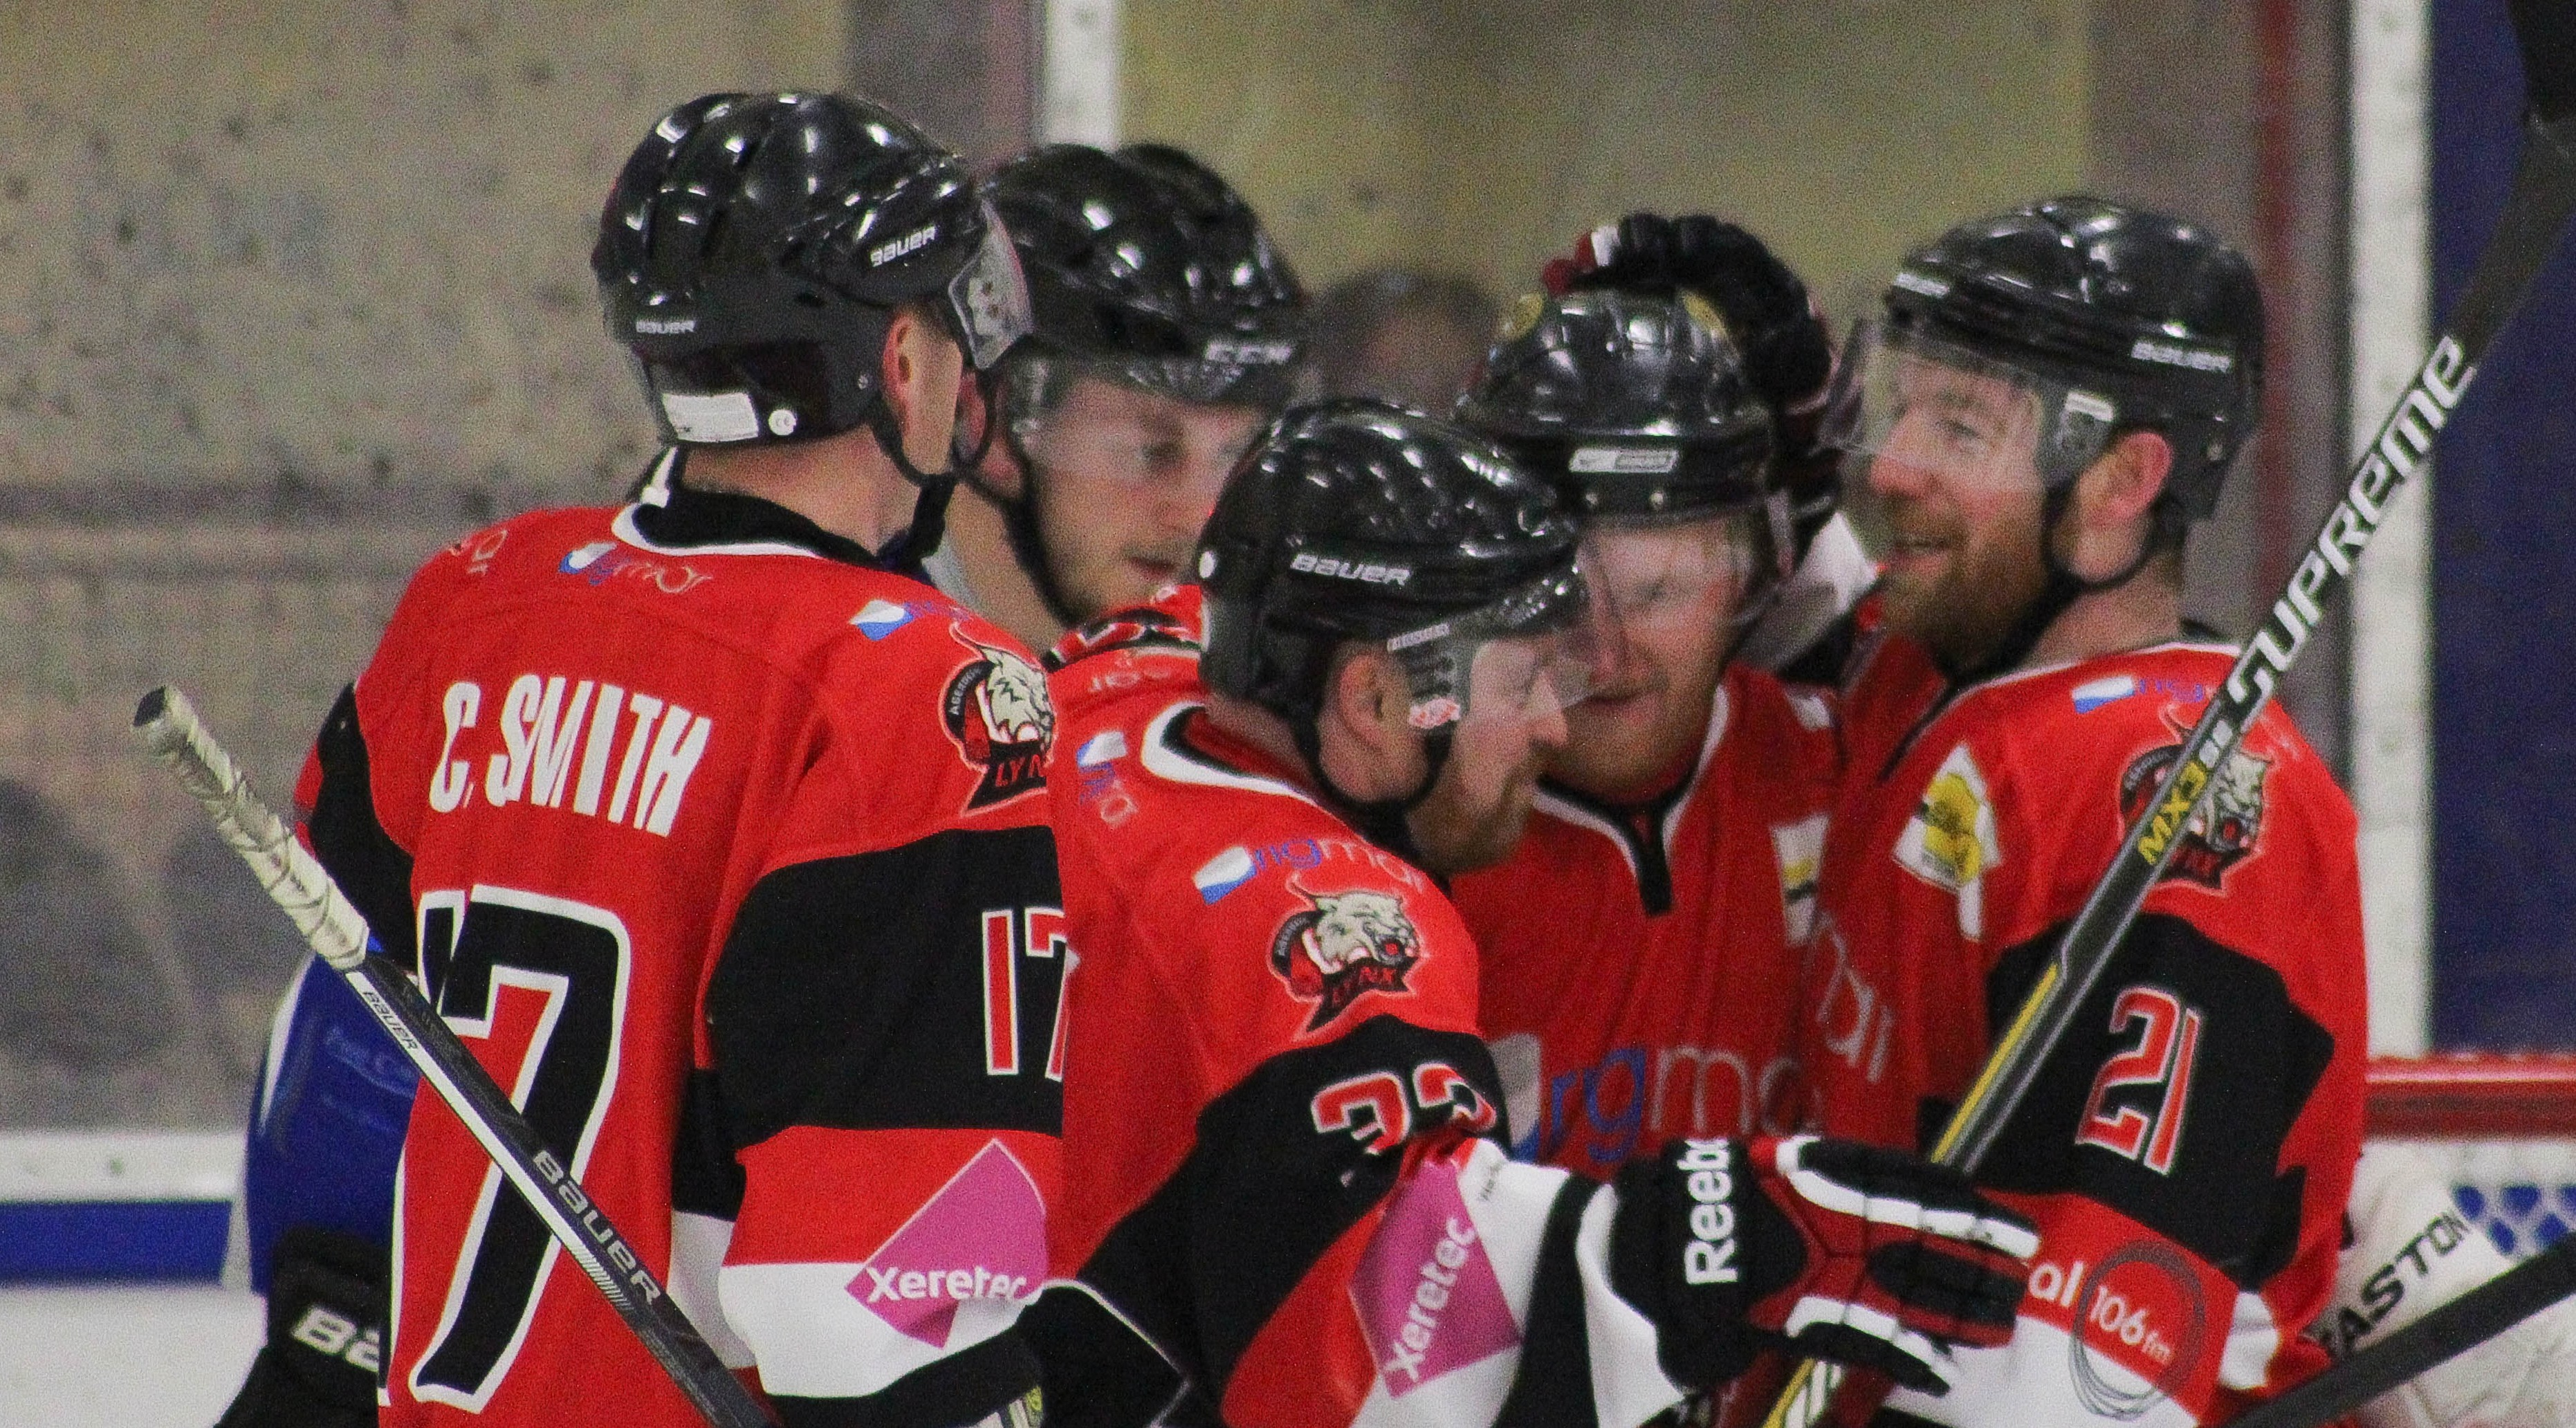 Aberdeen Lynx players, from left, Callum Smith, Kevin Turnbull, Mark Laing and Owen Reynolds celebrate. Pictures by L C Photography.